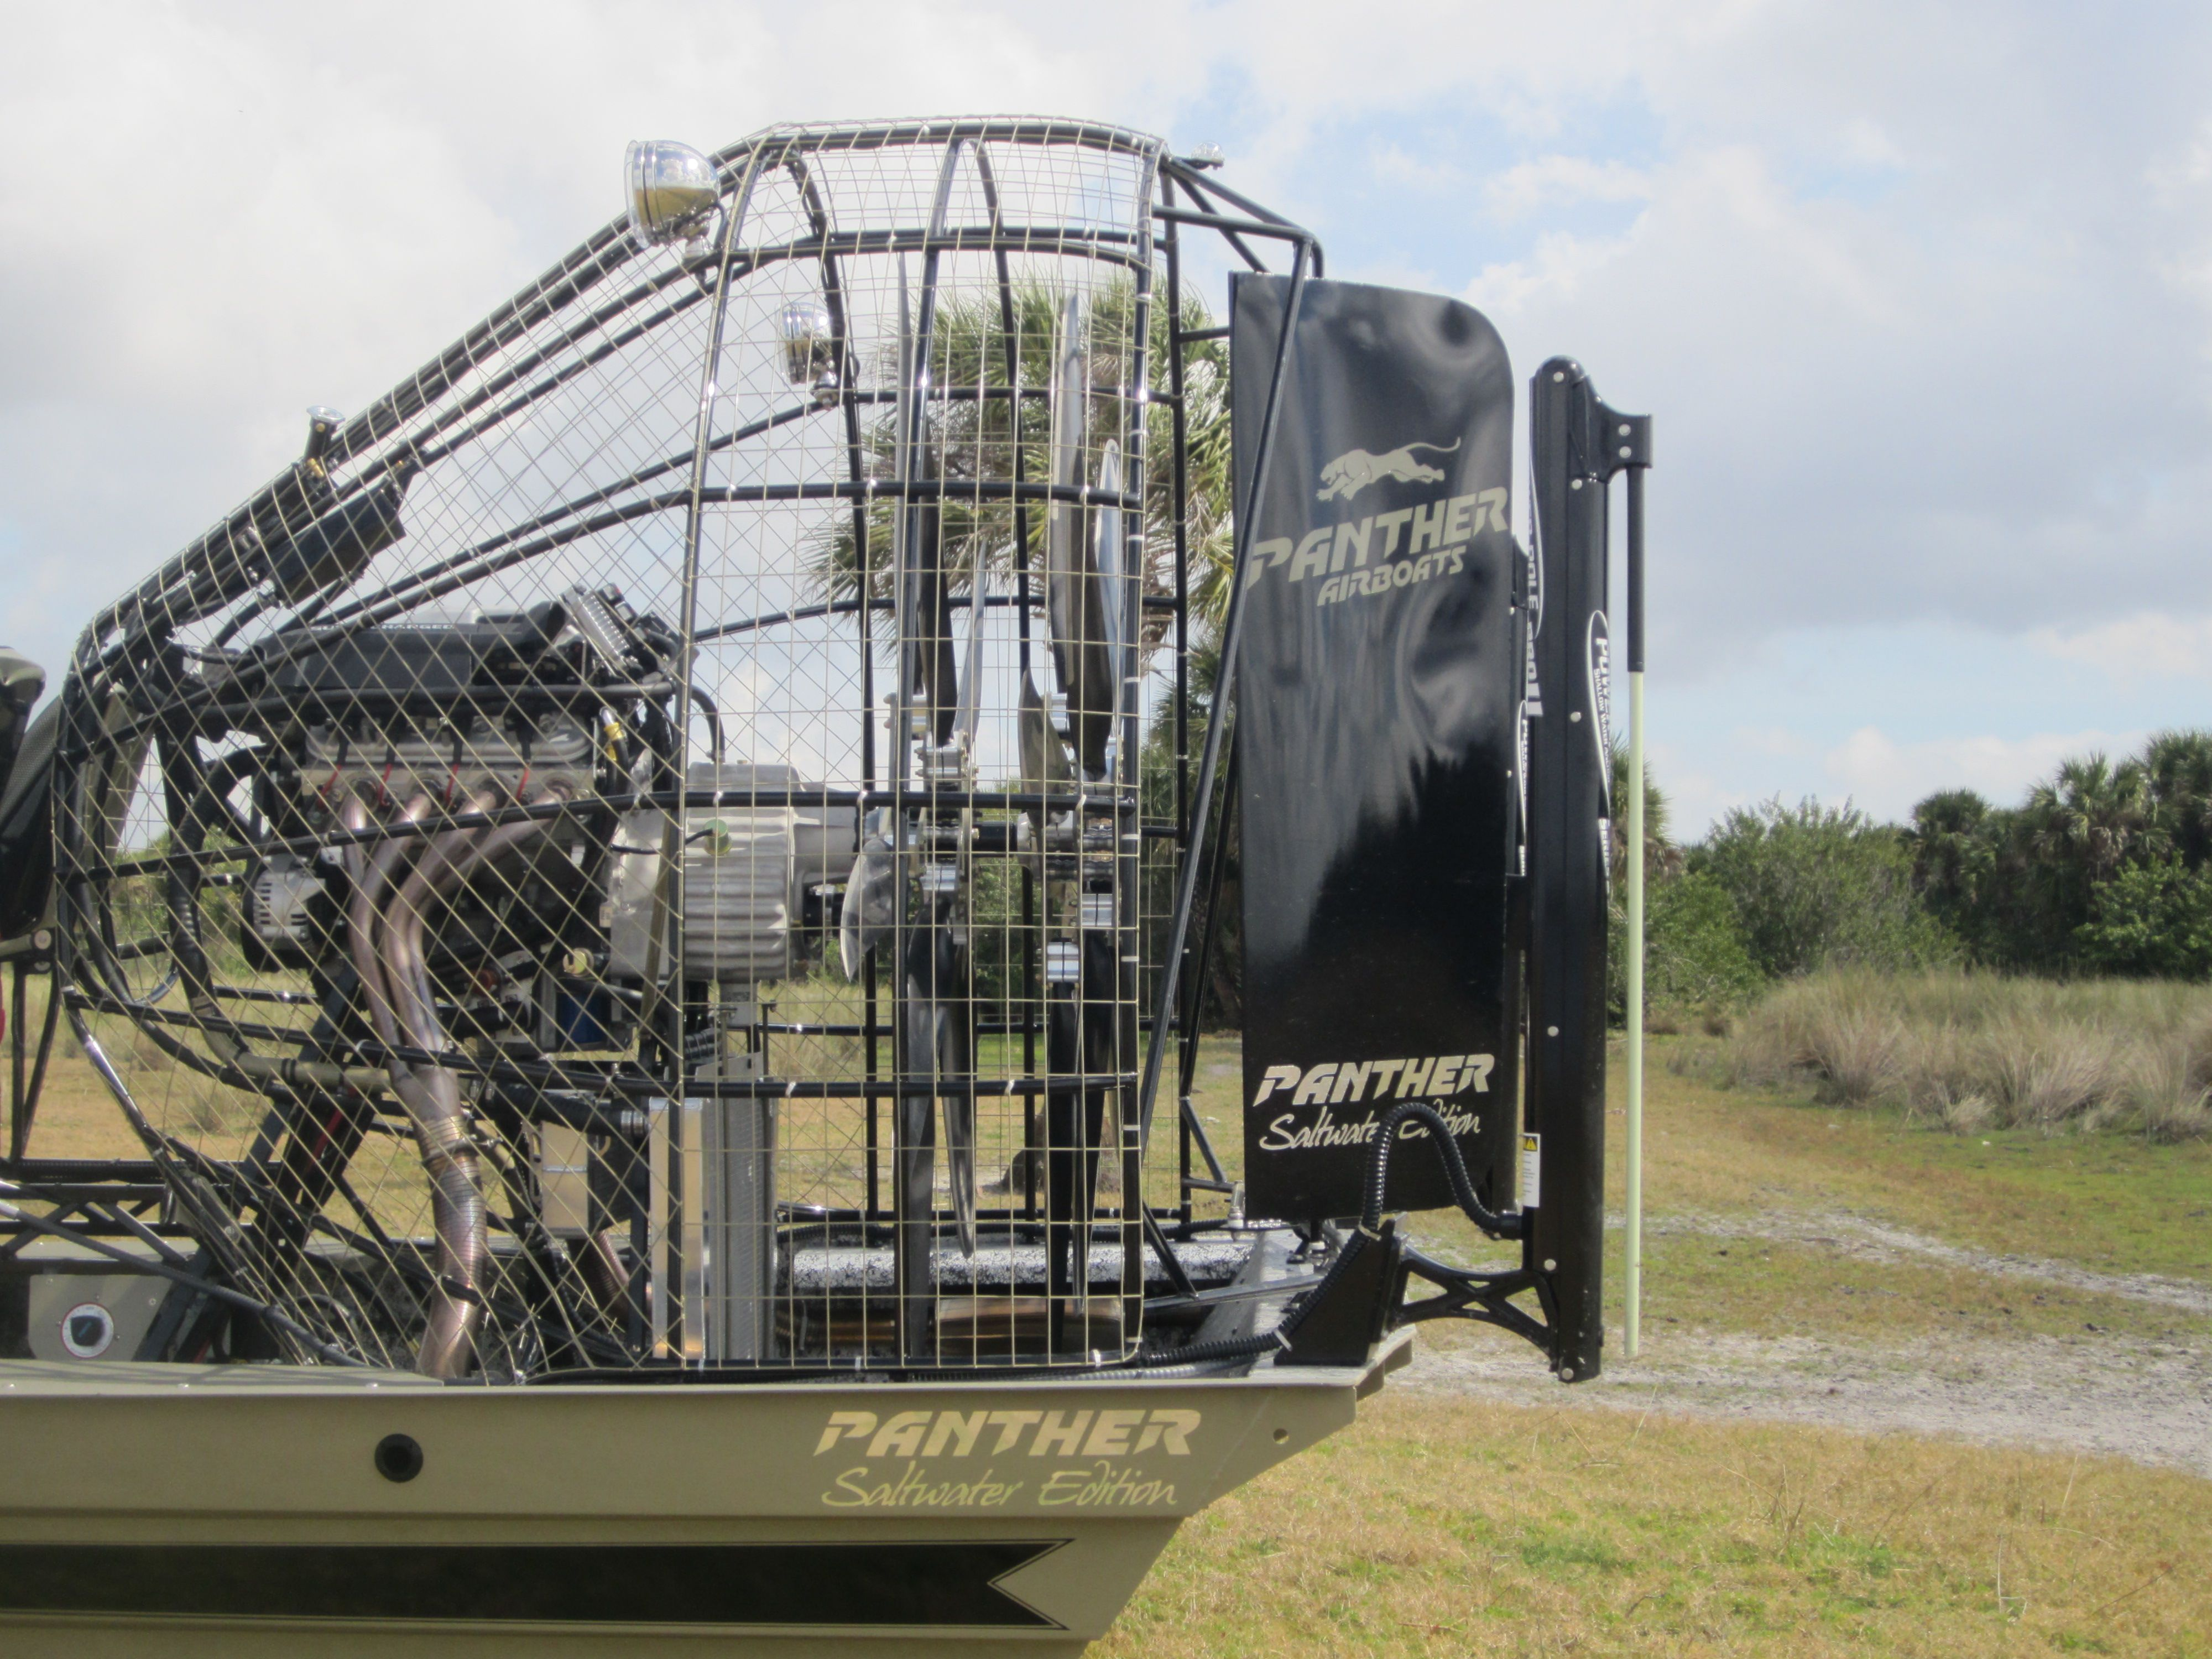 Panther Airboats Boat Airboat Buy A Boat